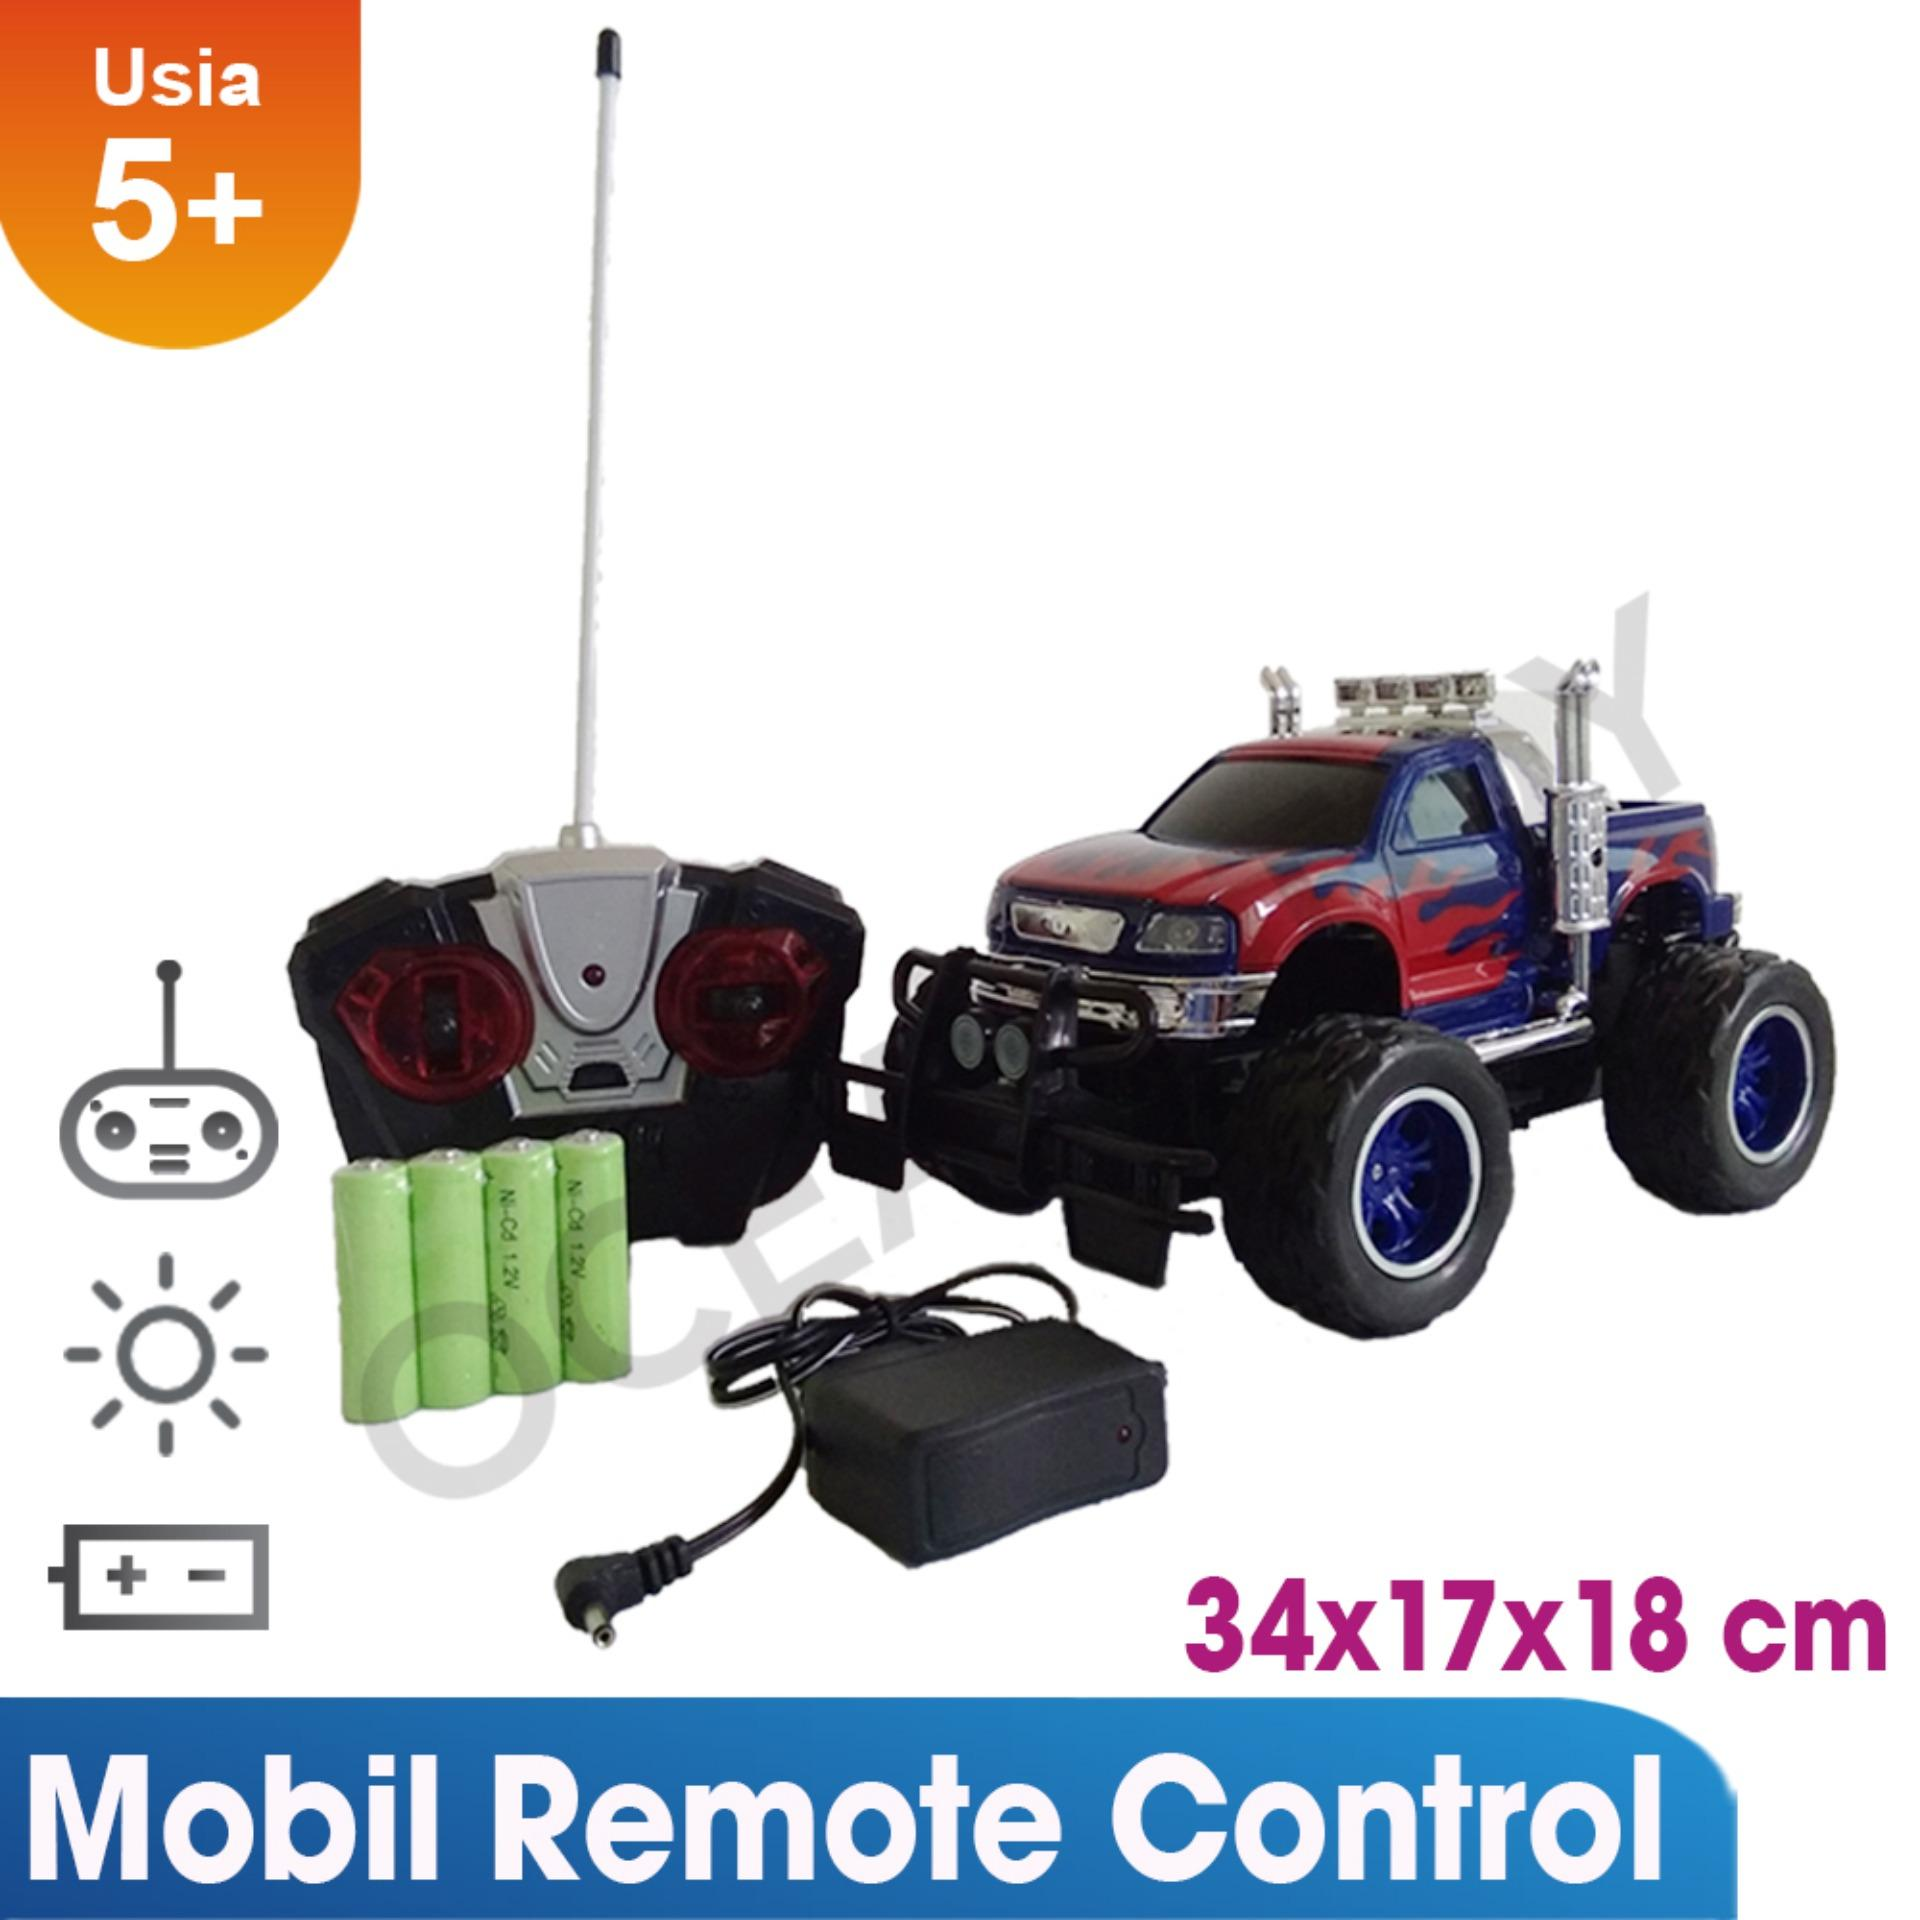 Situs Review Ocean Toy Mobil Remote Control Truck Super Power Mainan Anak 6144R